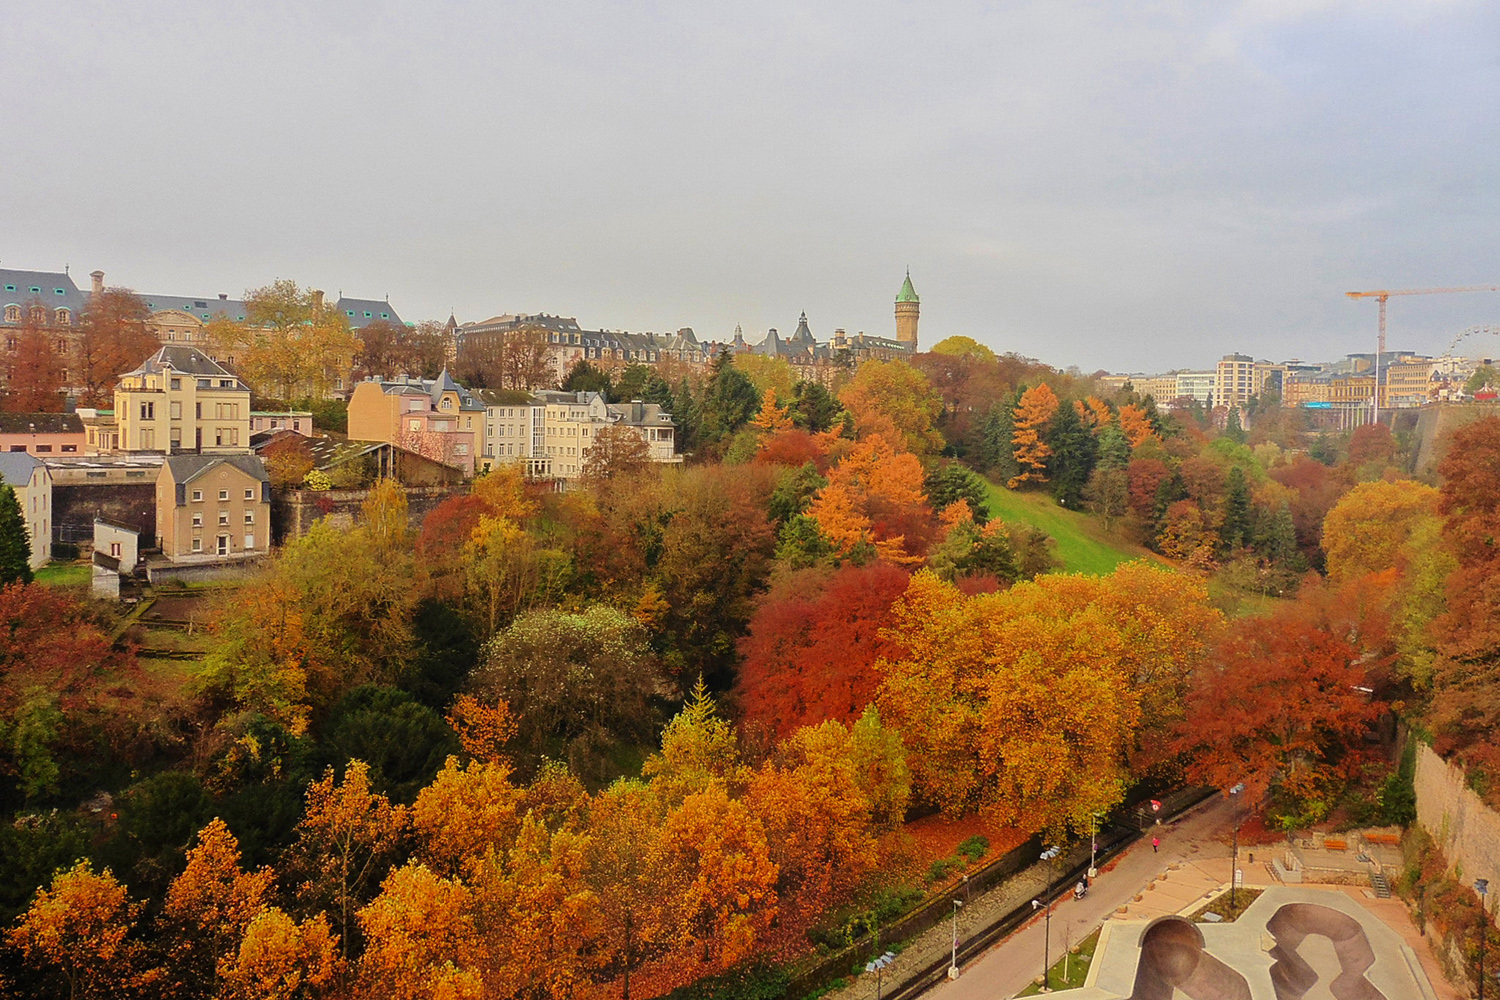 Luxembourg City is one of the best cities to visit in Europe in autumn. If you like colorful autumn trees, then read this article and discover where to see the most beautiful fall colors in Europe #Europe #fall #fallfoliage #foliage #europefoliage #fallcolors #fallcolours #colours#autumn #luxembourg